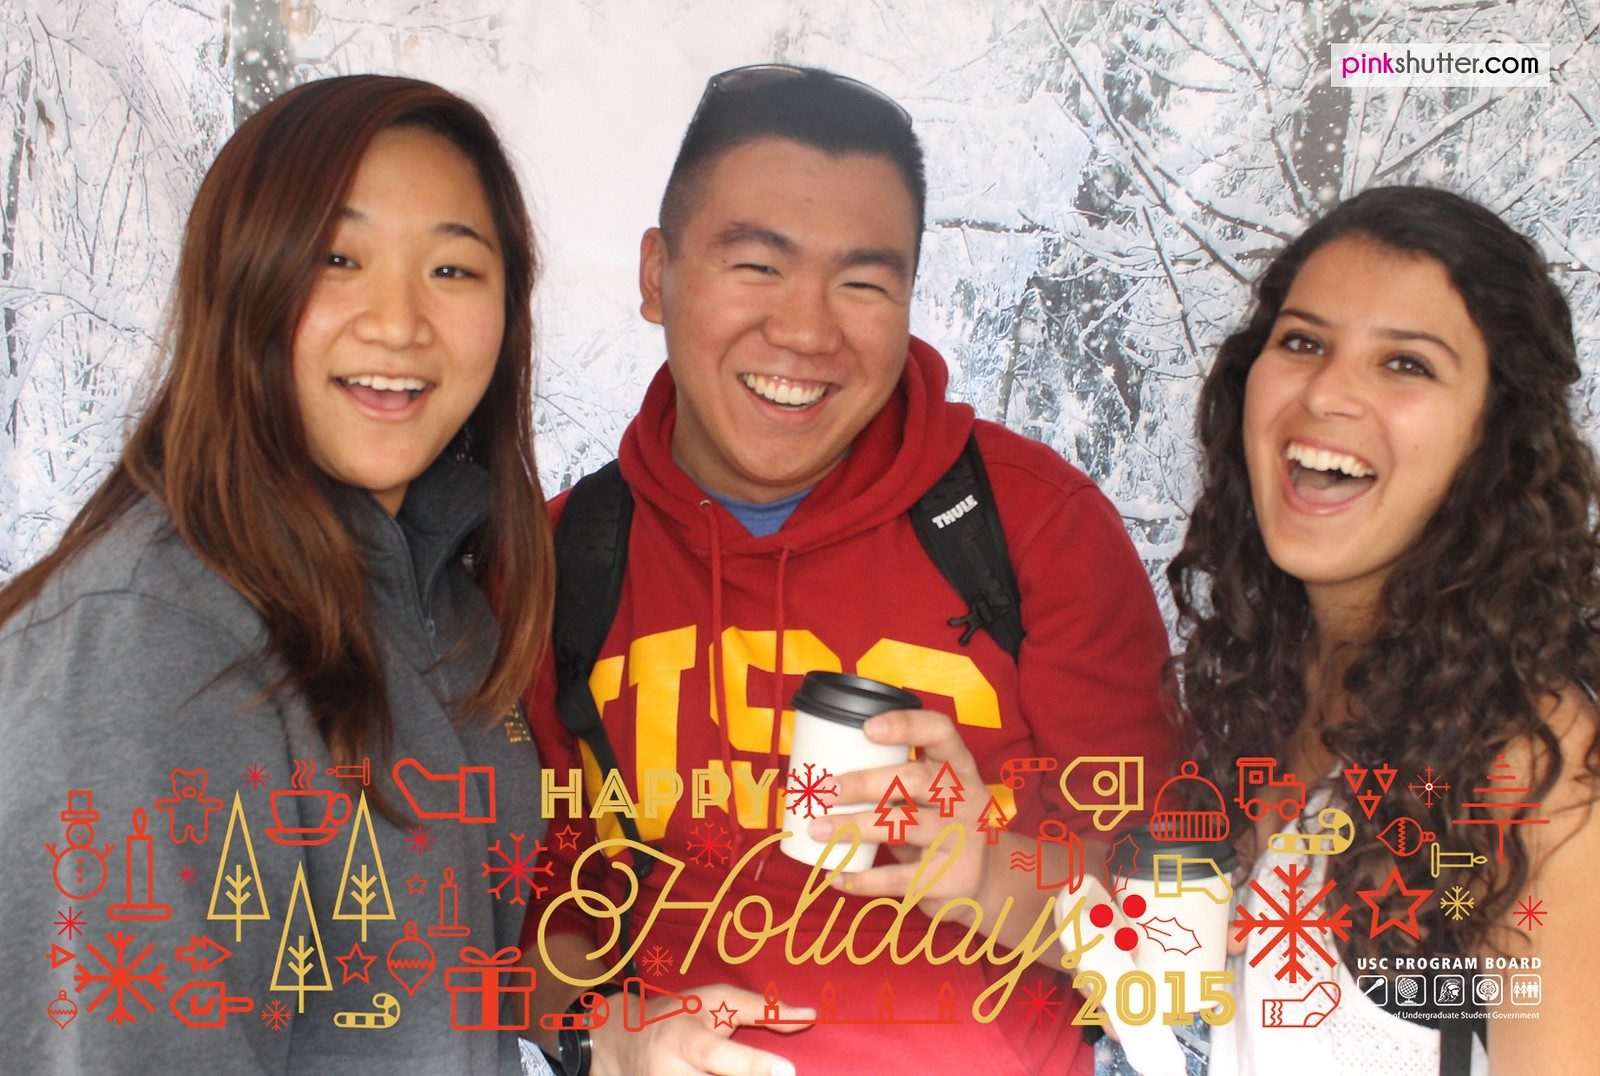 USC Trojans Snap Shots in Front of a Winter Backdrop